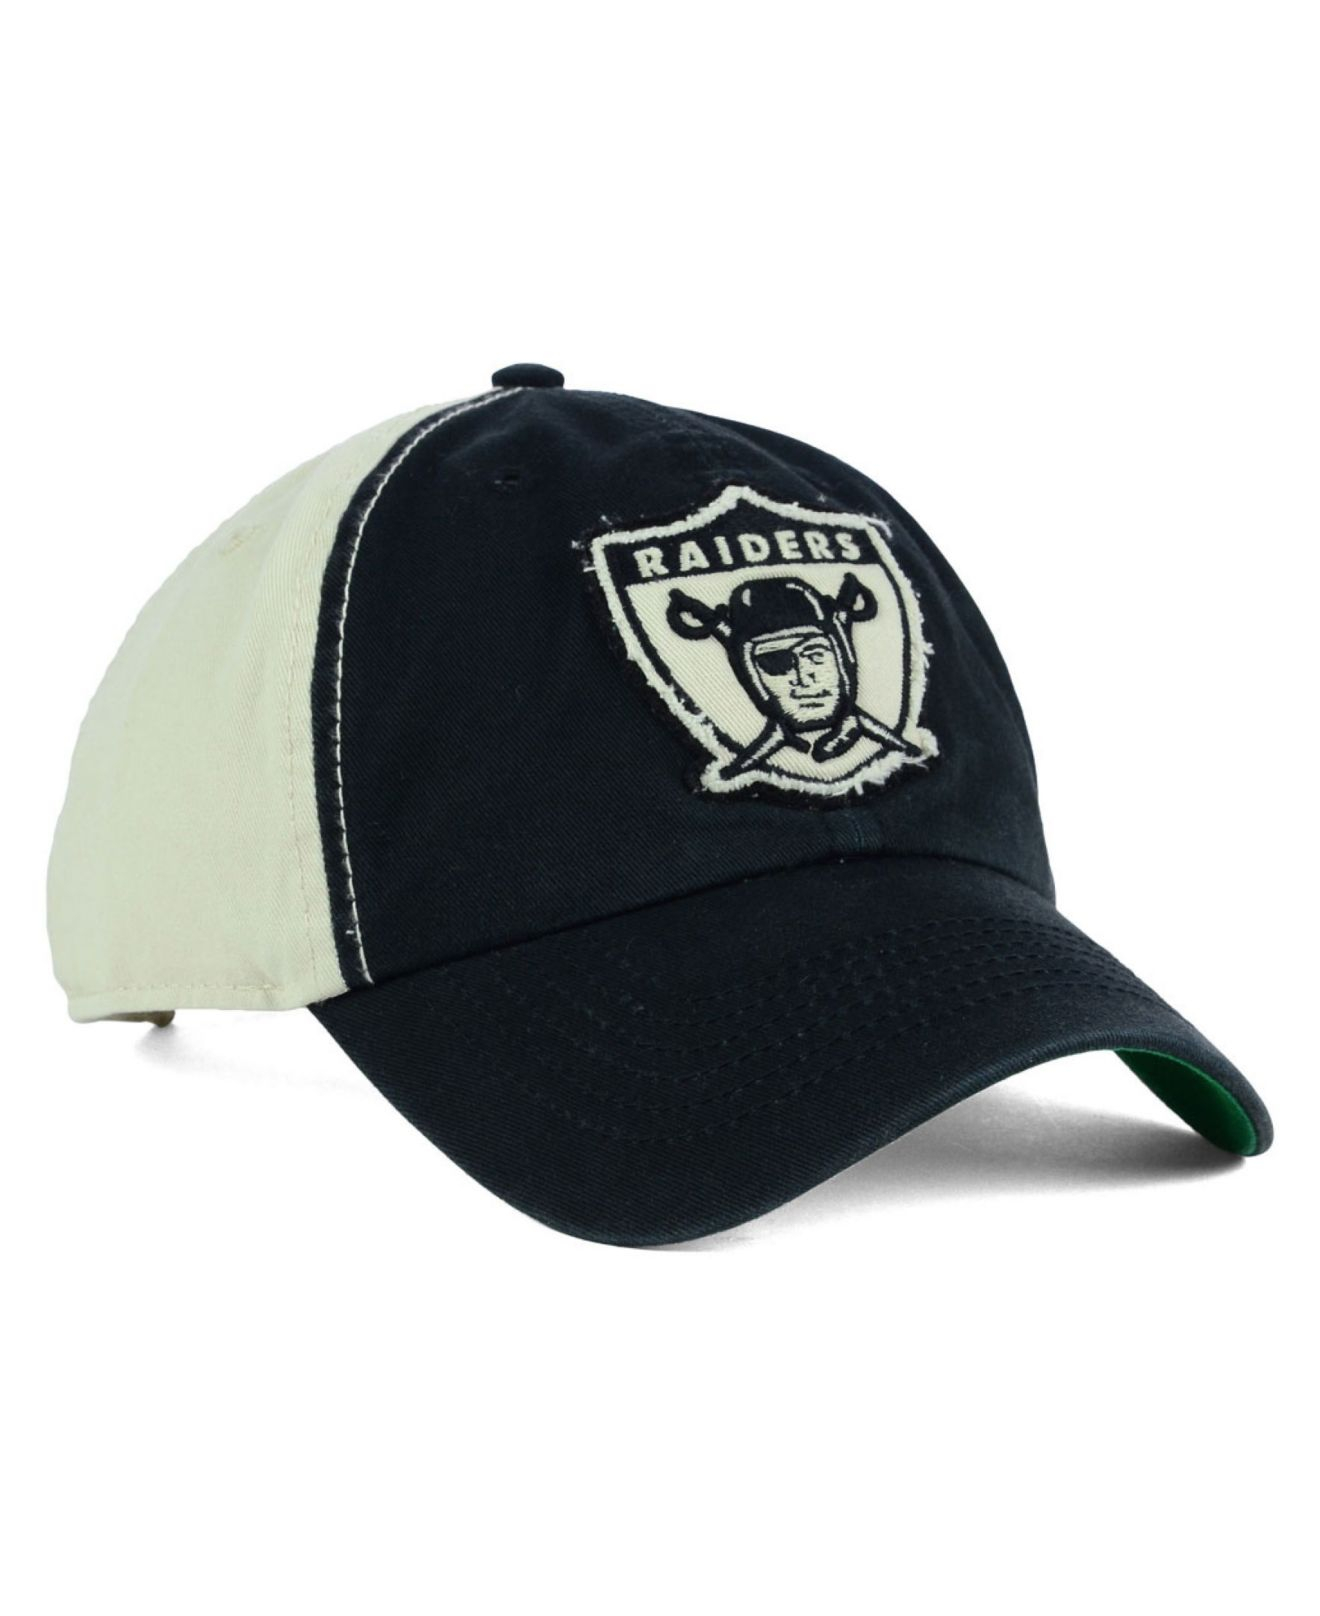 Lyst - 47 Brand Oakland Raiders Nfl Derby Clean Up Cap in Black for Men fd81a1e73